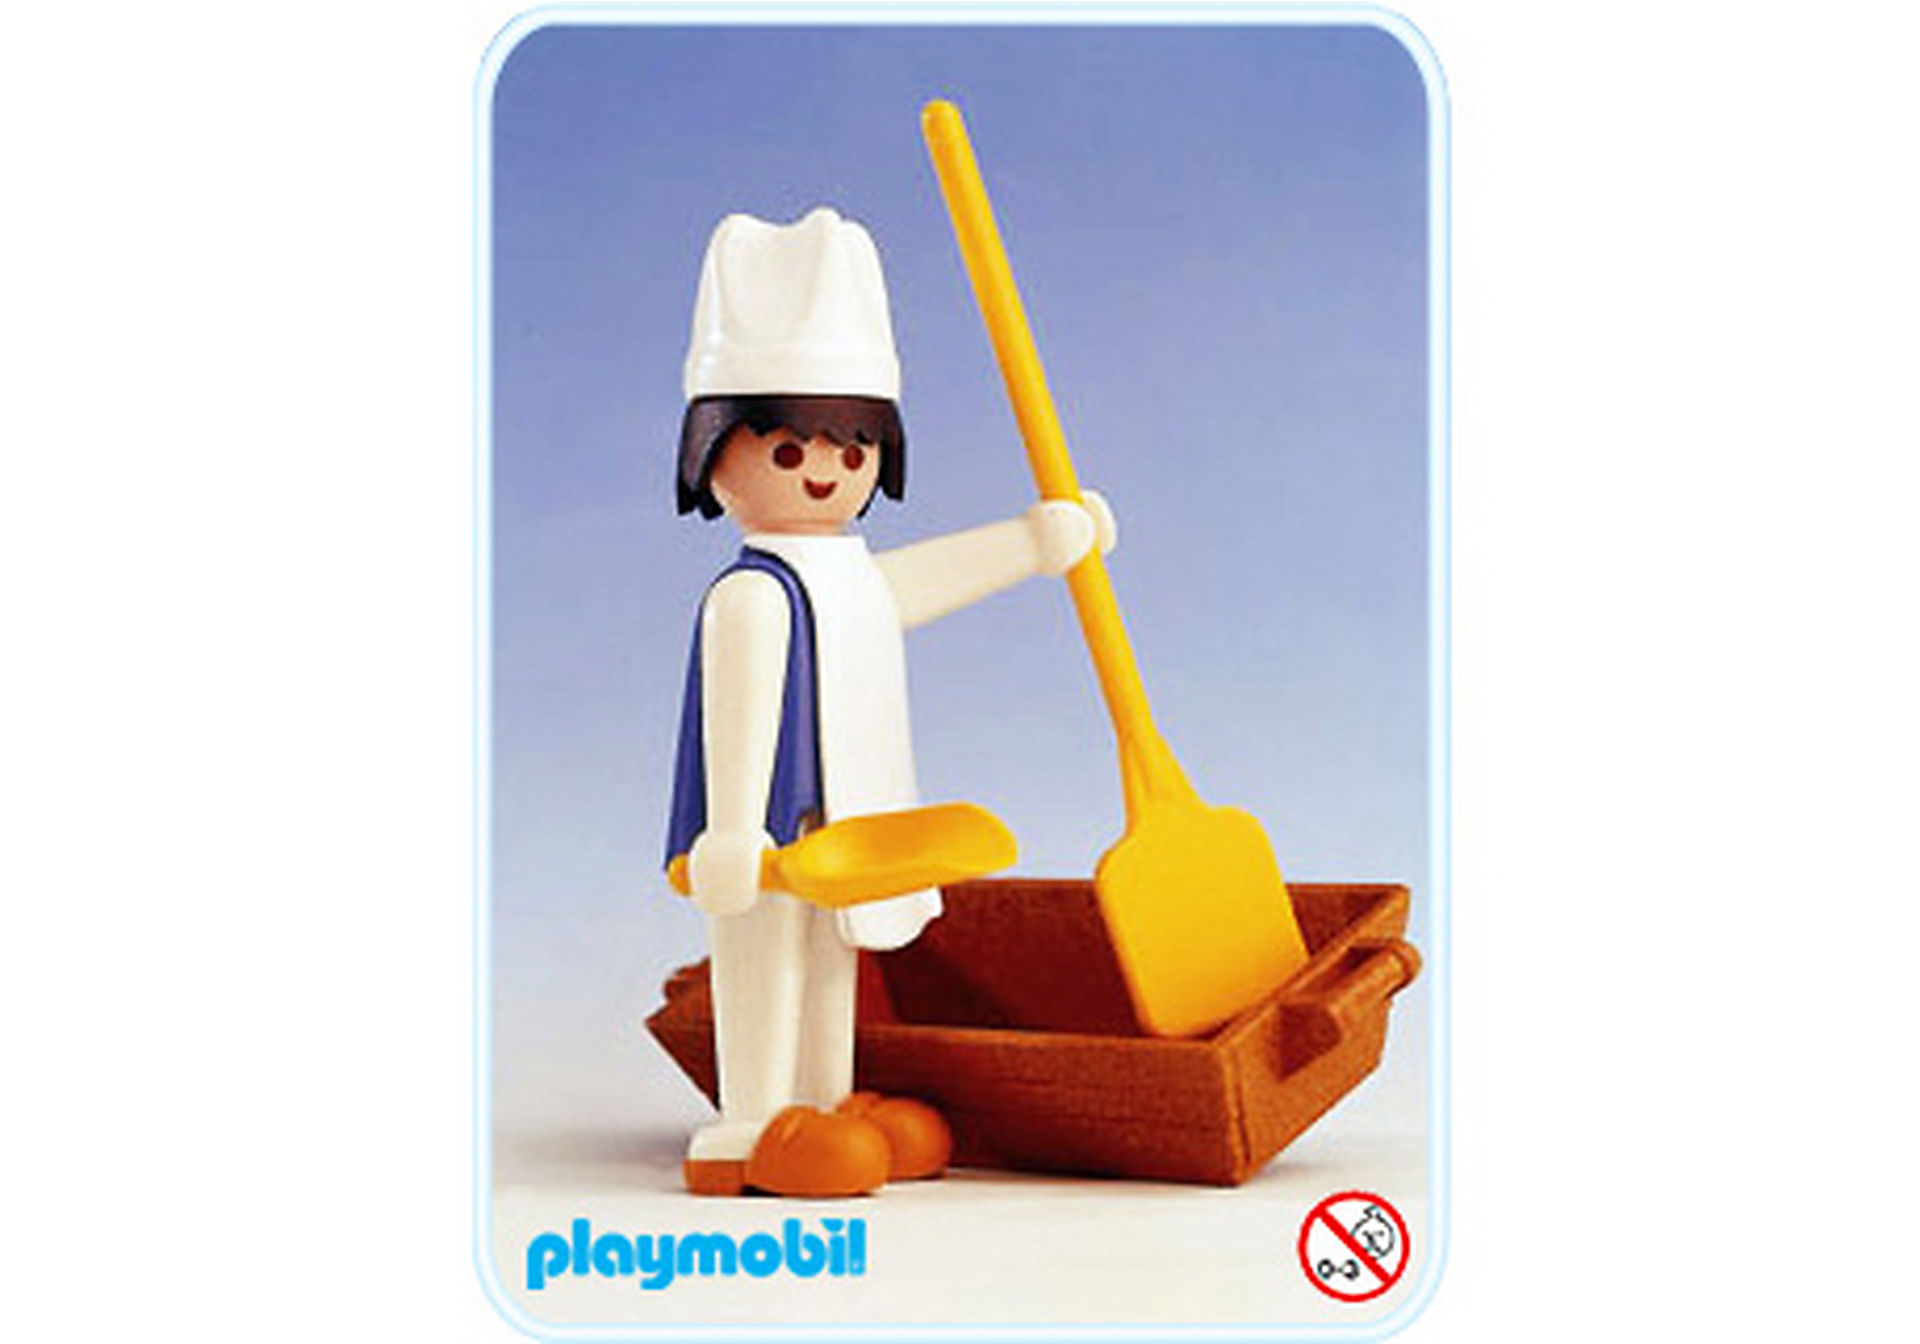 http://media.playmobil.com/i/playmobil/3371-A_product_detail/Bäcker/Backtrog